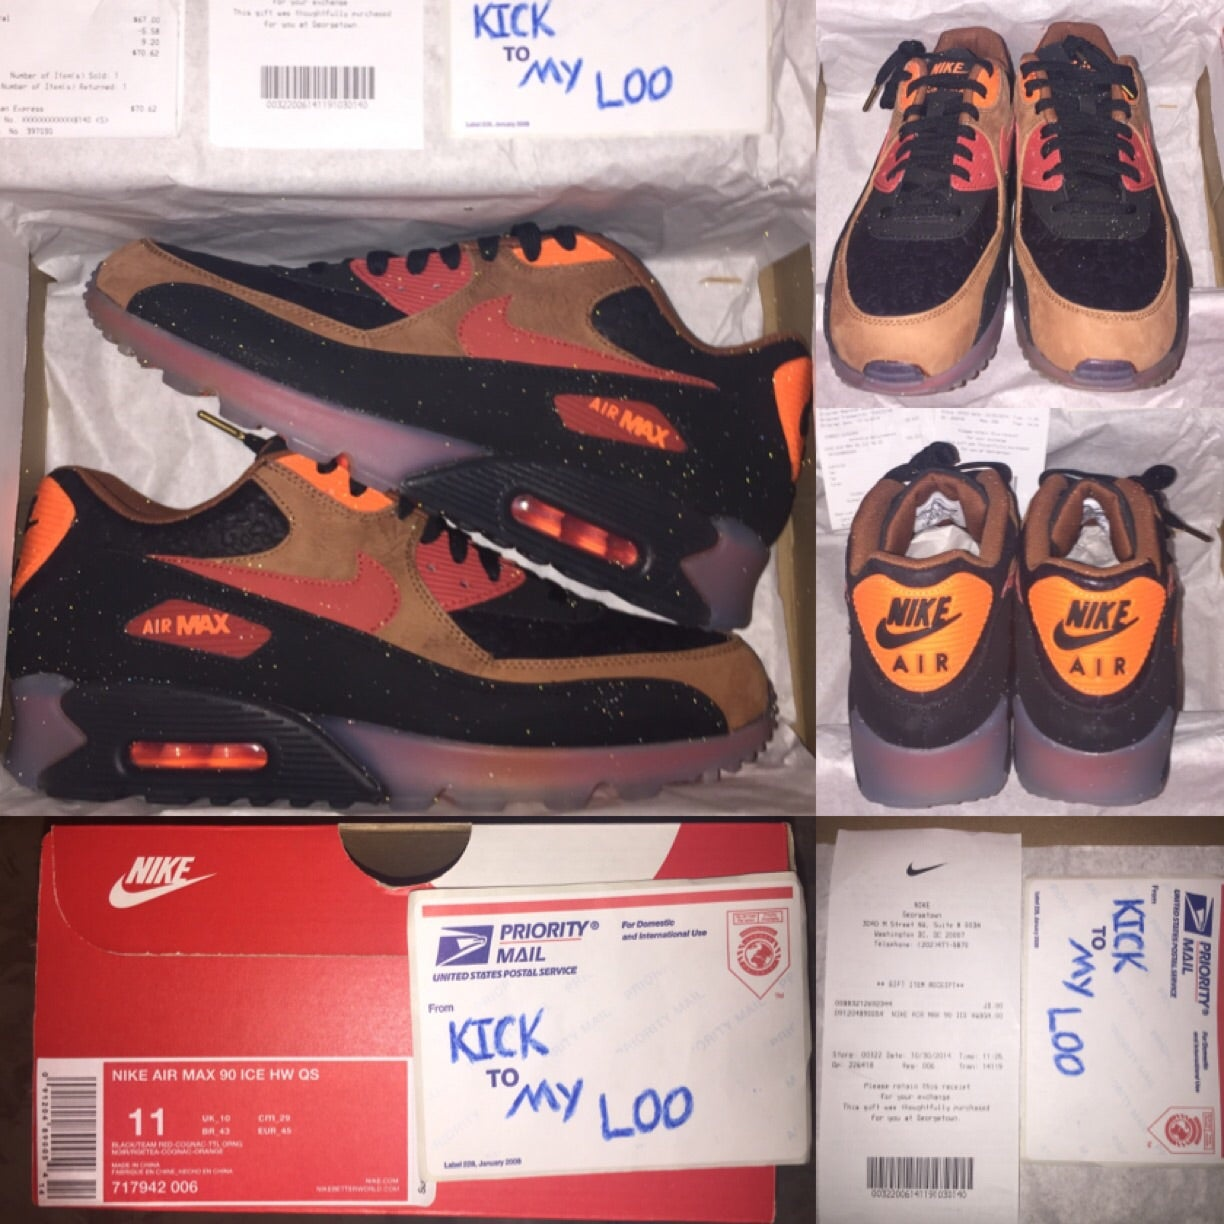 Nike Air Max 90 ICE Premium 2014 Halloween QS [11]